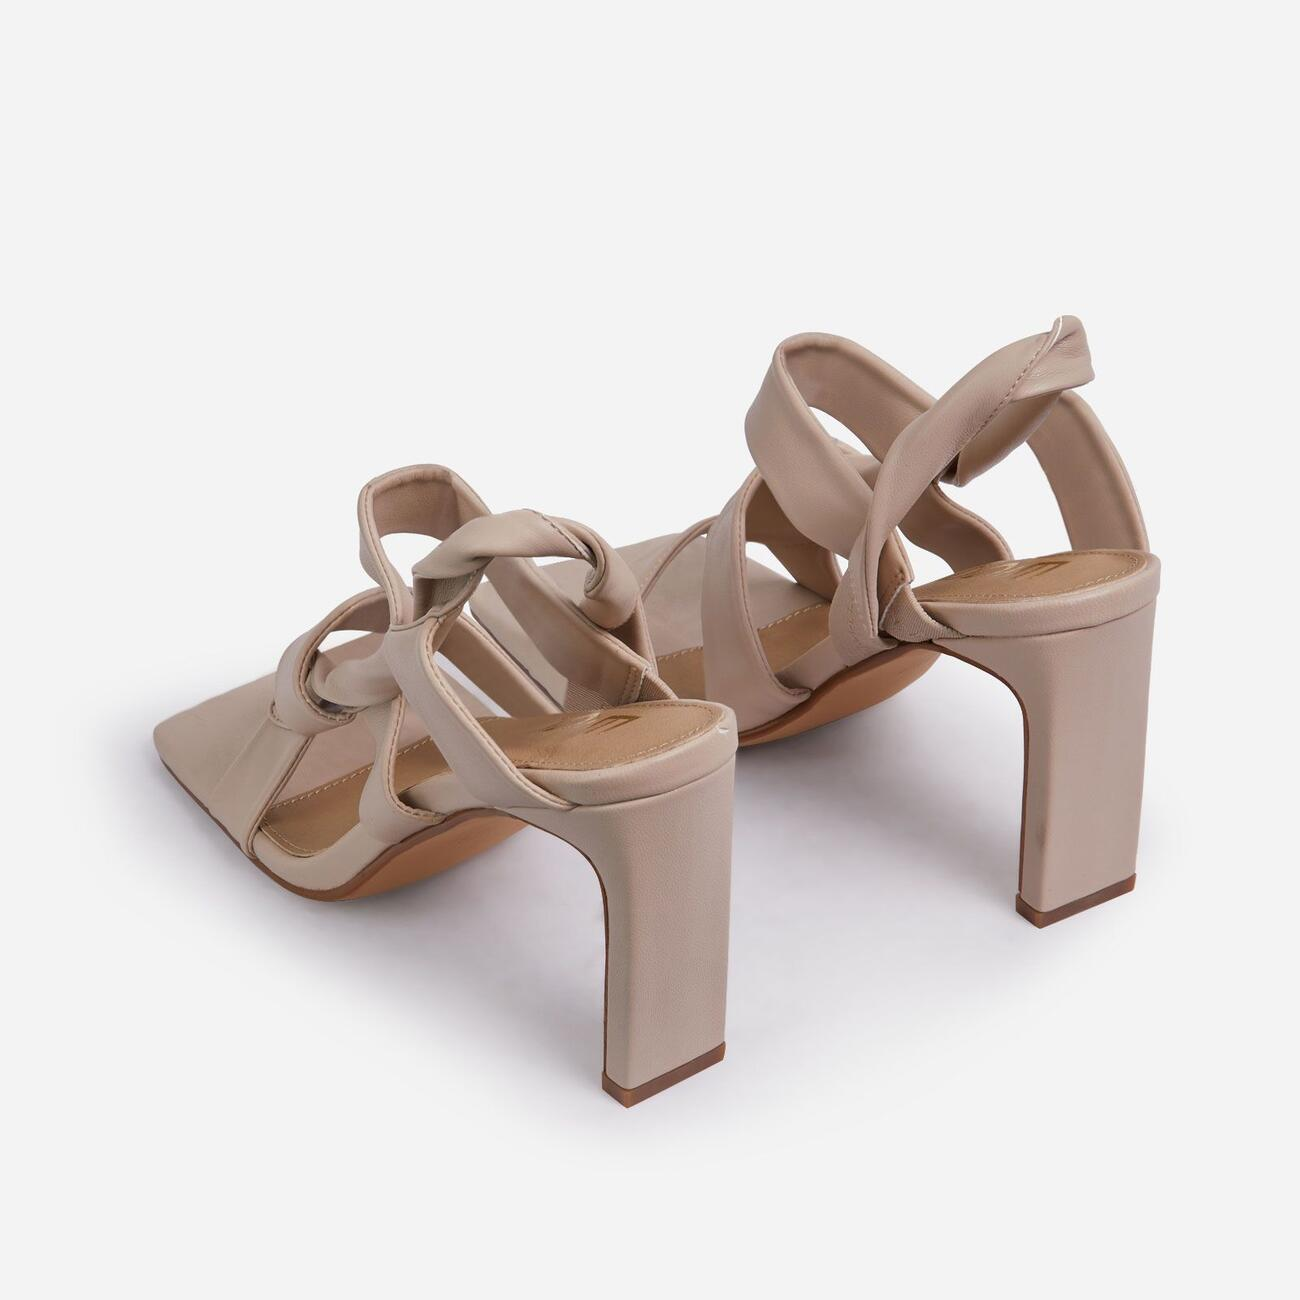 Ripple Strappy Caged Square Toe Heel Mule In Nude Faux Leather Image 3